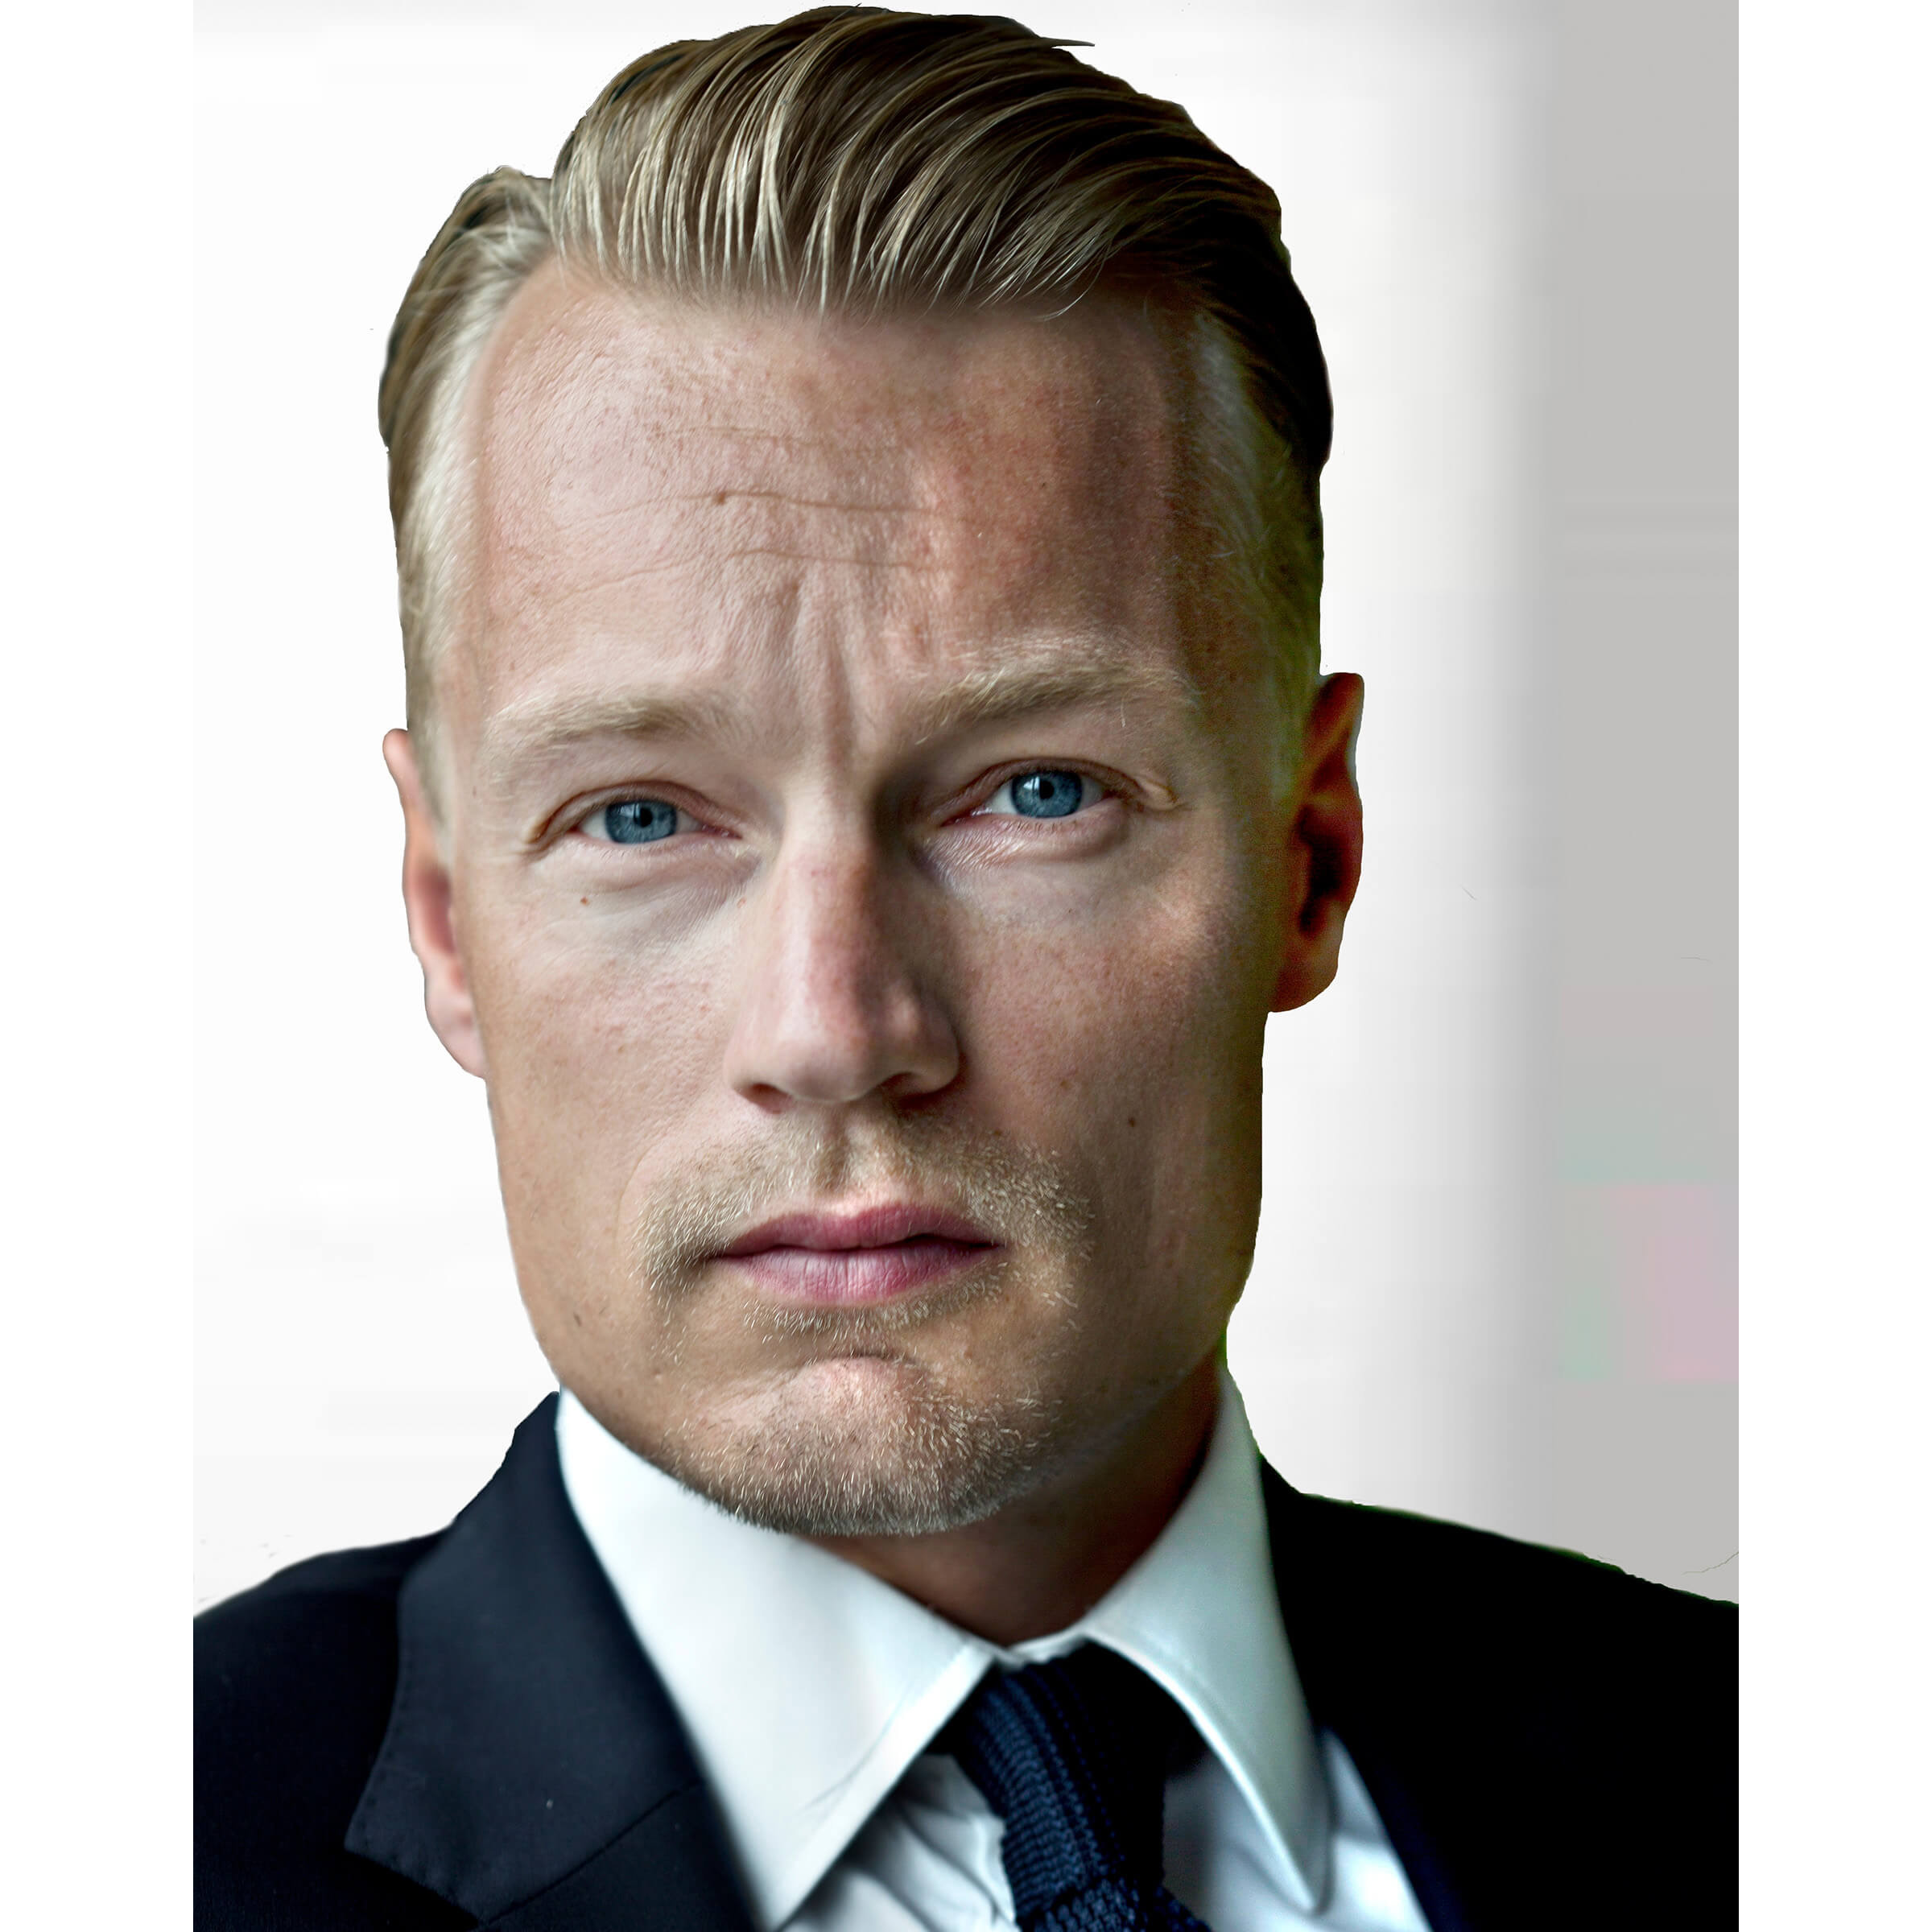 Mr. MADS BORDING RASMUSSEN - COO